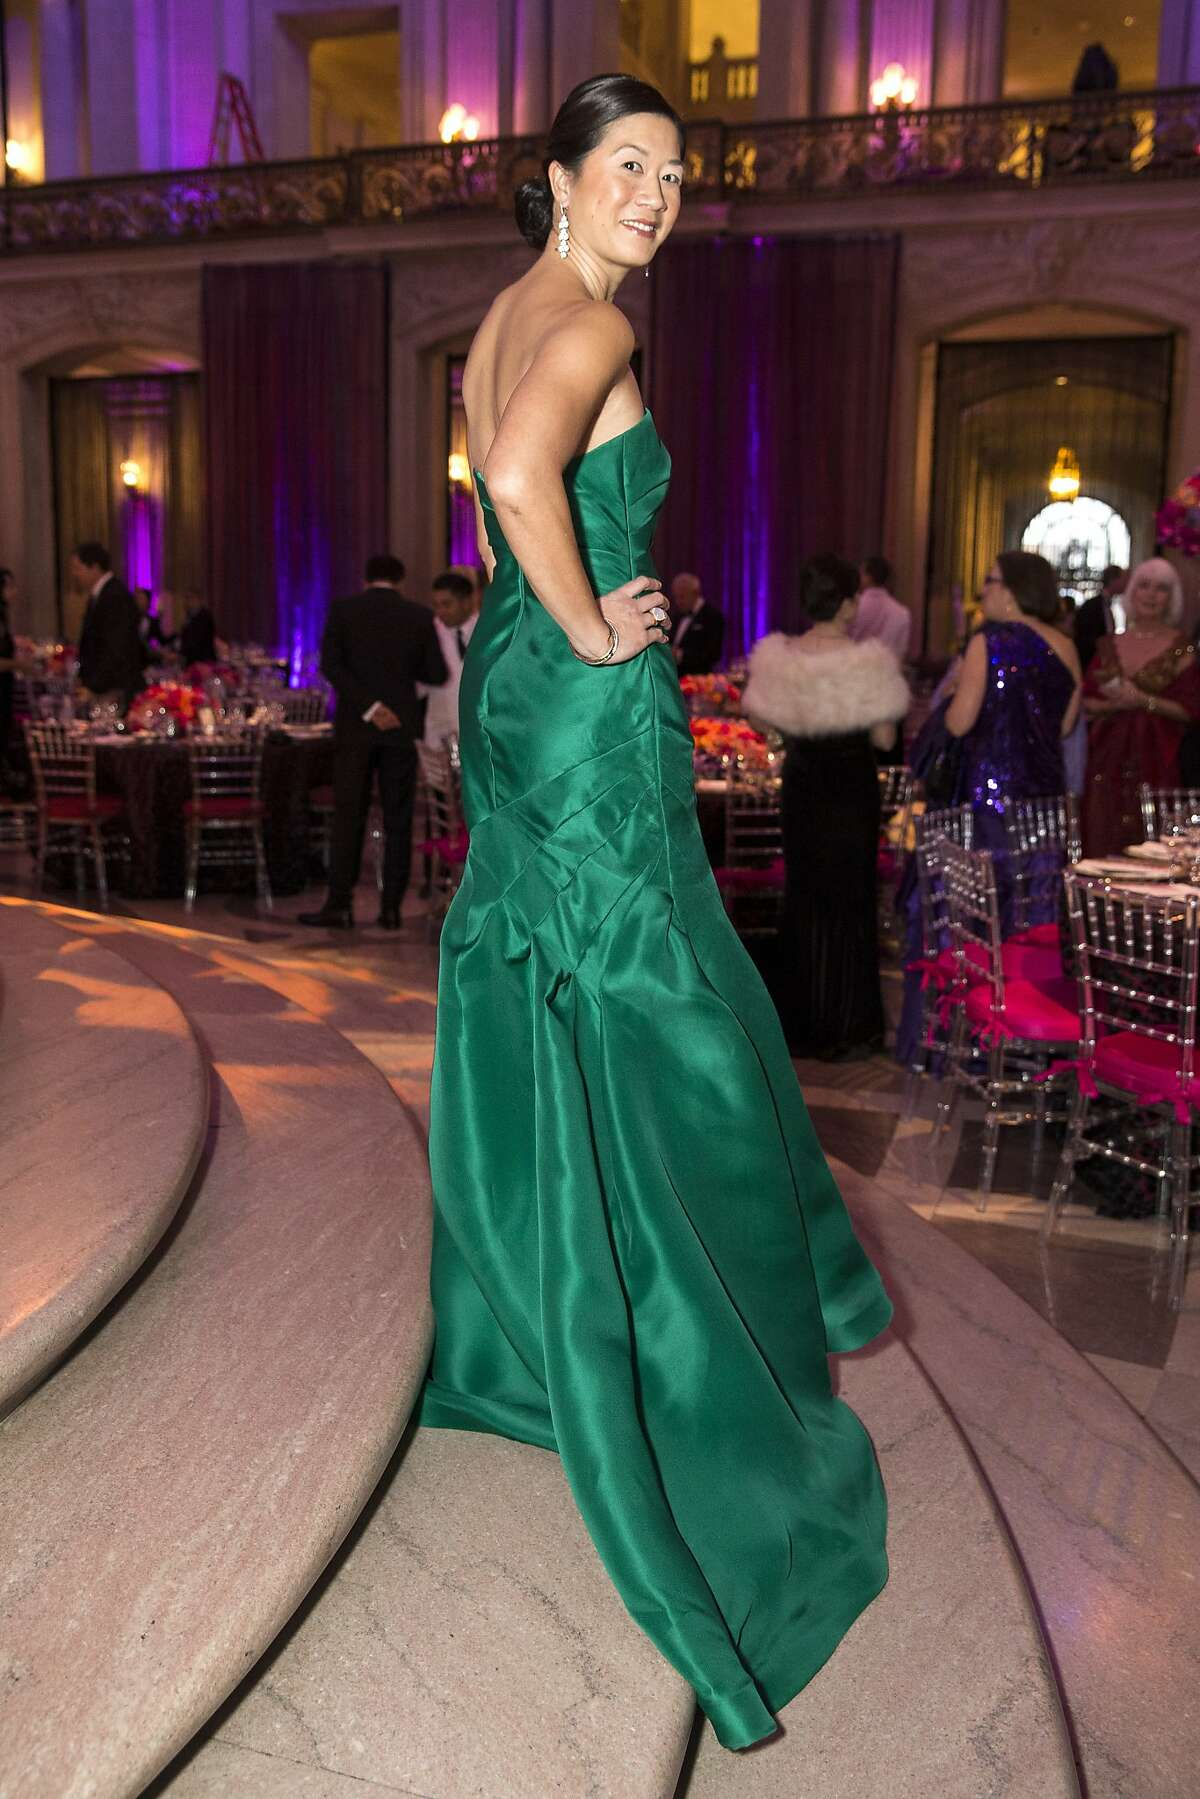 Christine Leong Connors poses for a portrait wearing a Monique Lhuillier gown during the San Francisco Ballet 2016 Opening Night Gala at San Francisco City Hall in San Francisco, Calif., on Thursday, January 21, 2016. Connors was the dinner chair for the gala. The gala celebrated the opening of the company's 83rd season.